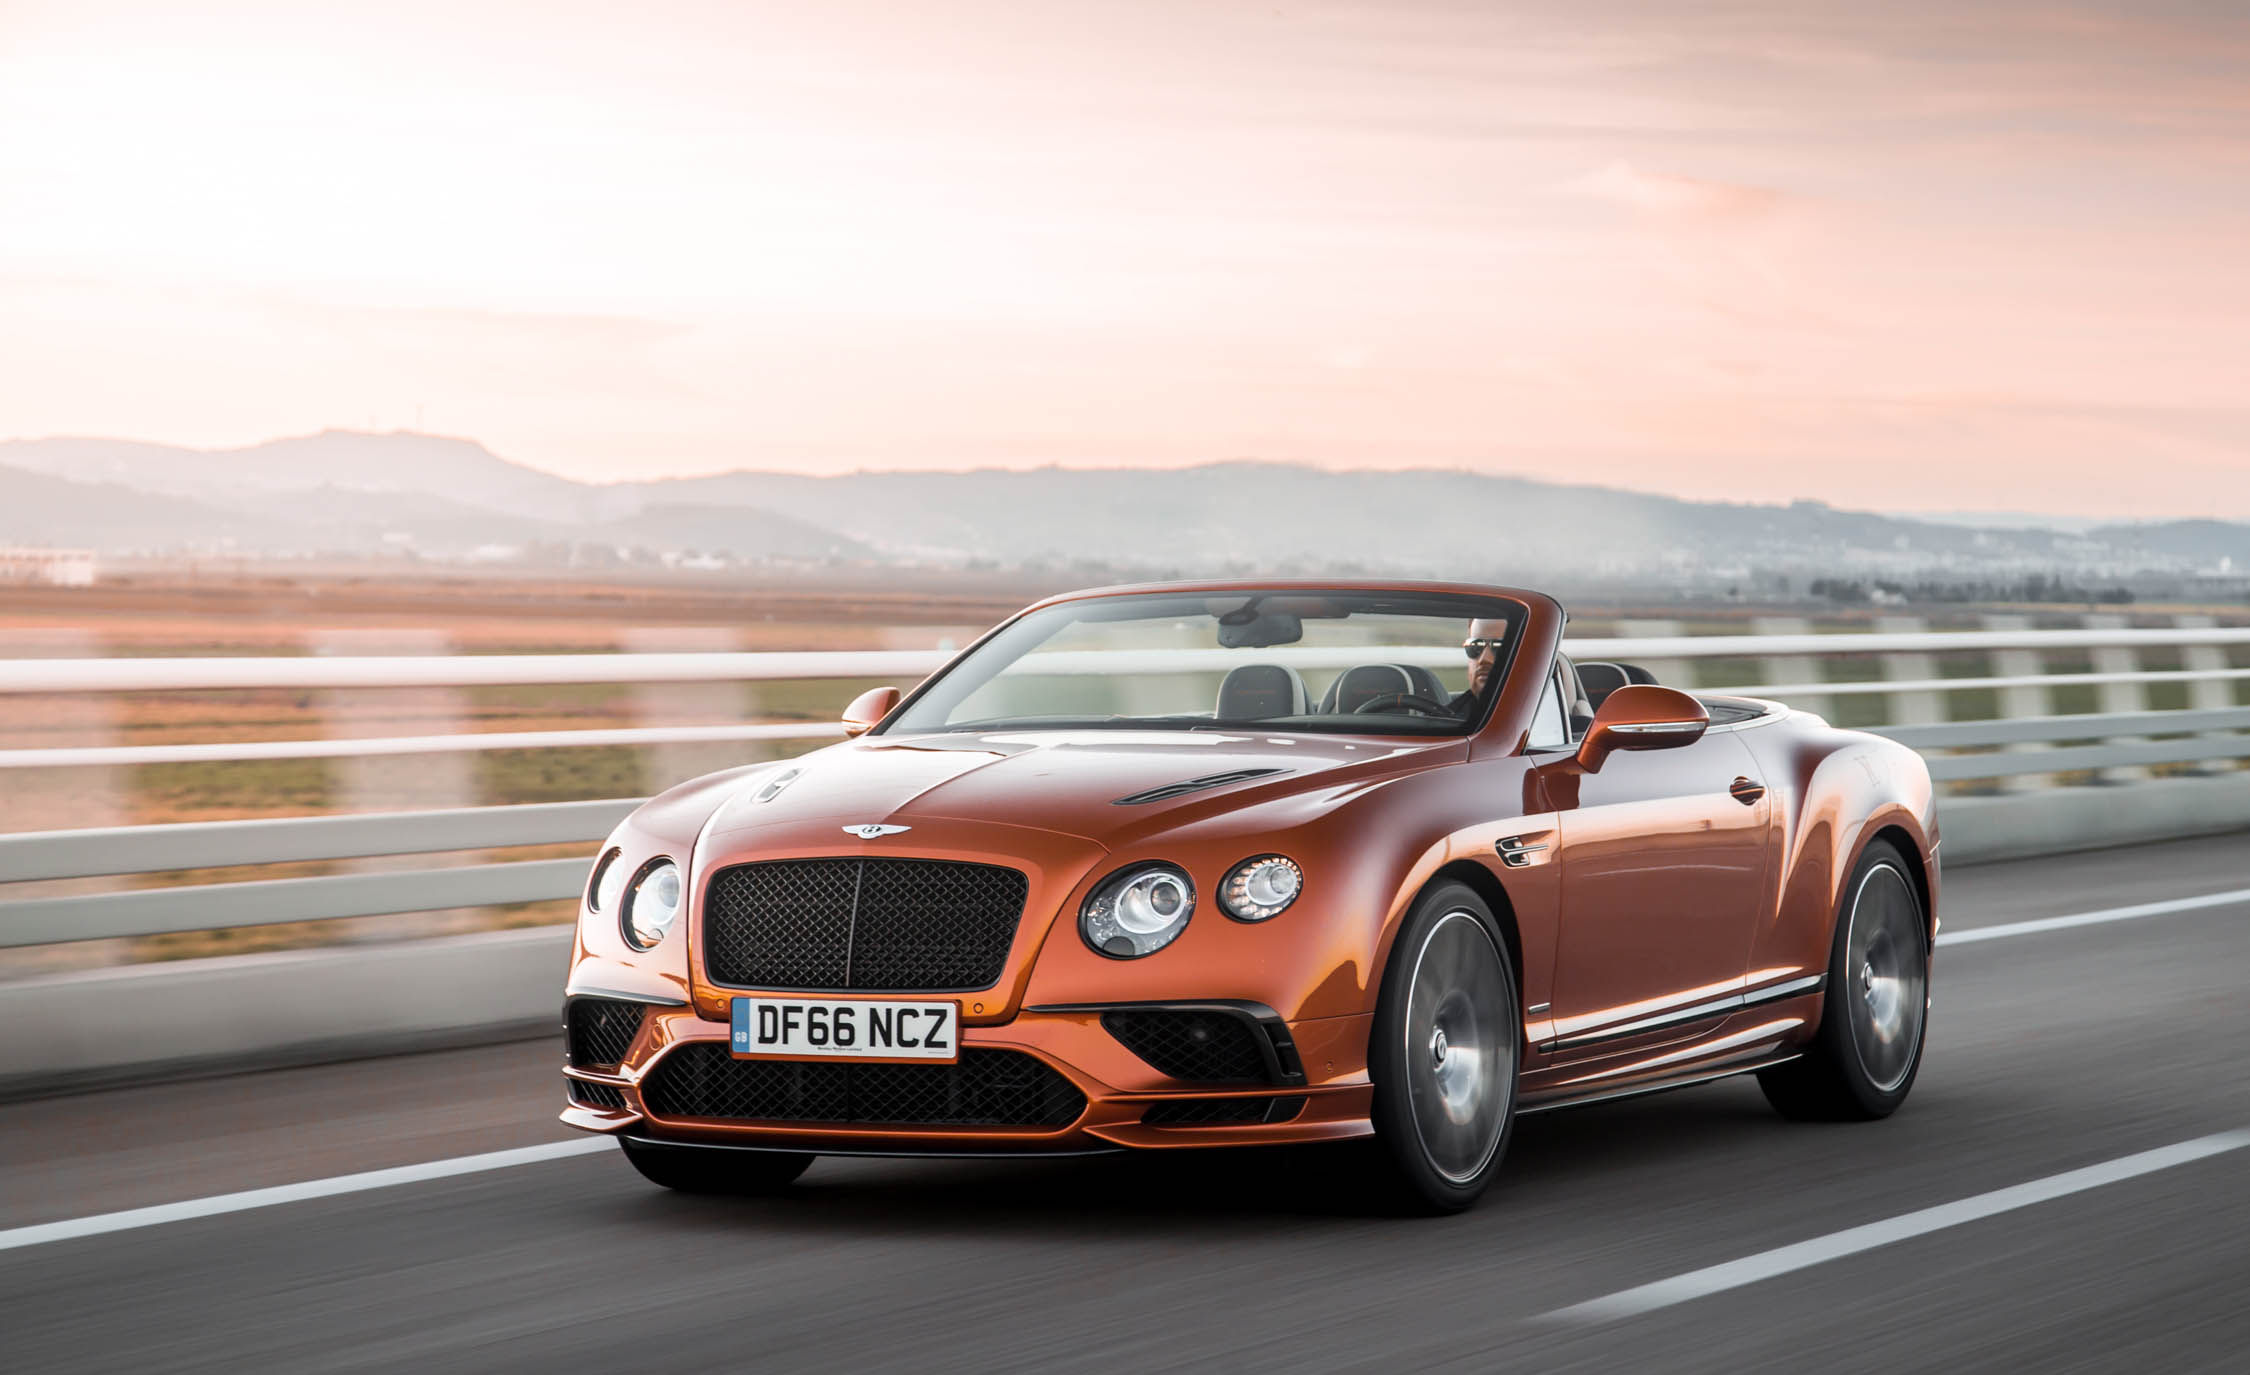 2018 Bentley Continental Supersports Convertible Orange Metallic (View 51 of 66)